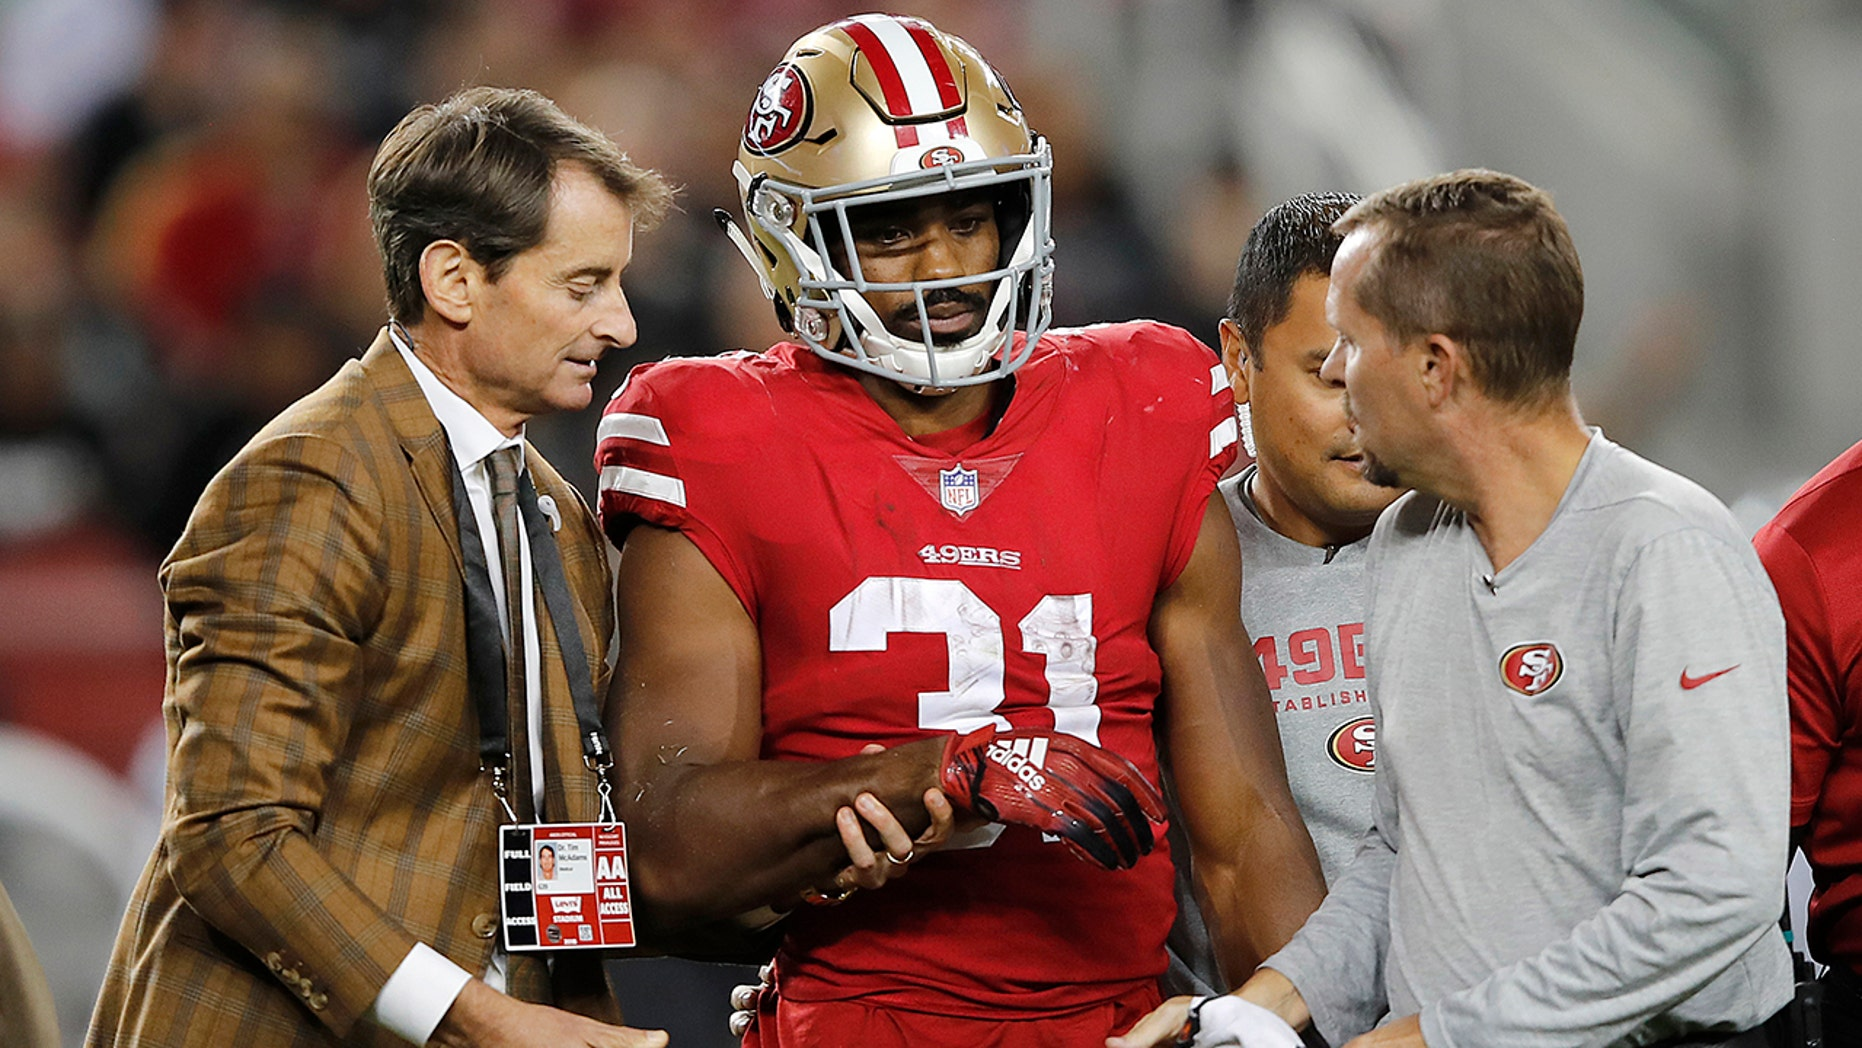 San Francisco 49ers running back Raheem Mostert (31) walks off the field with trainers during the second half of the team's NFL football game against the Oakland Raiders in Santa Clara, Calif., Thursday, Nov. 1, 2018.